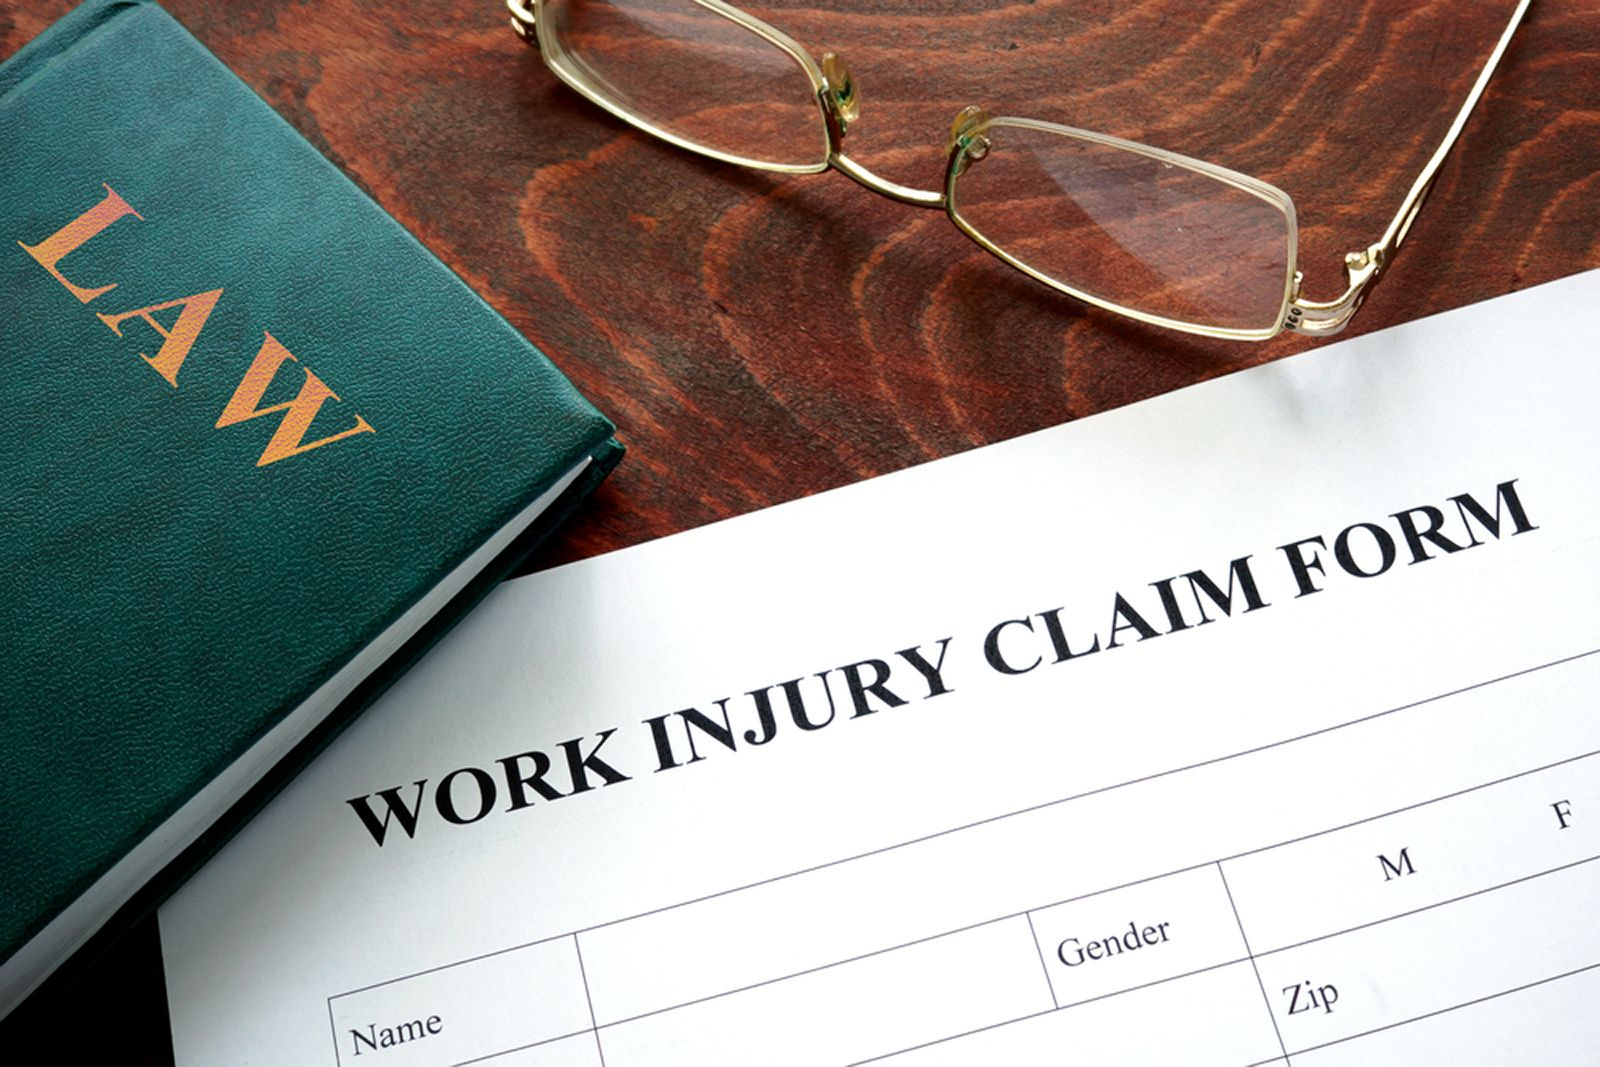 A work injury claim form